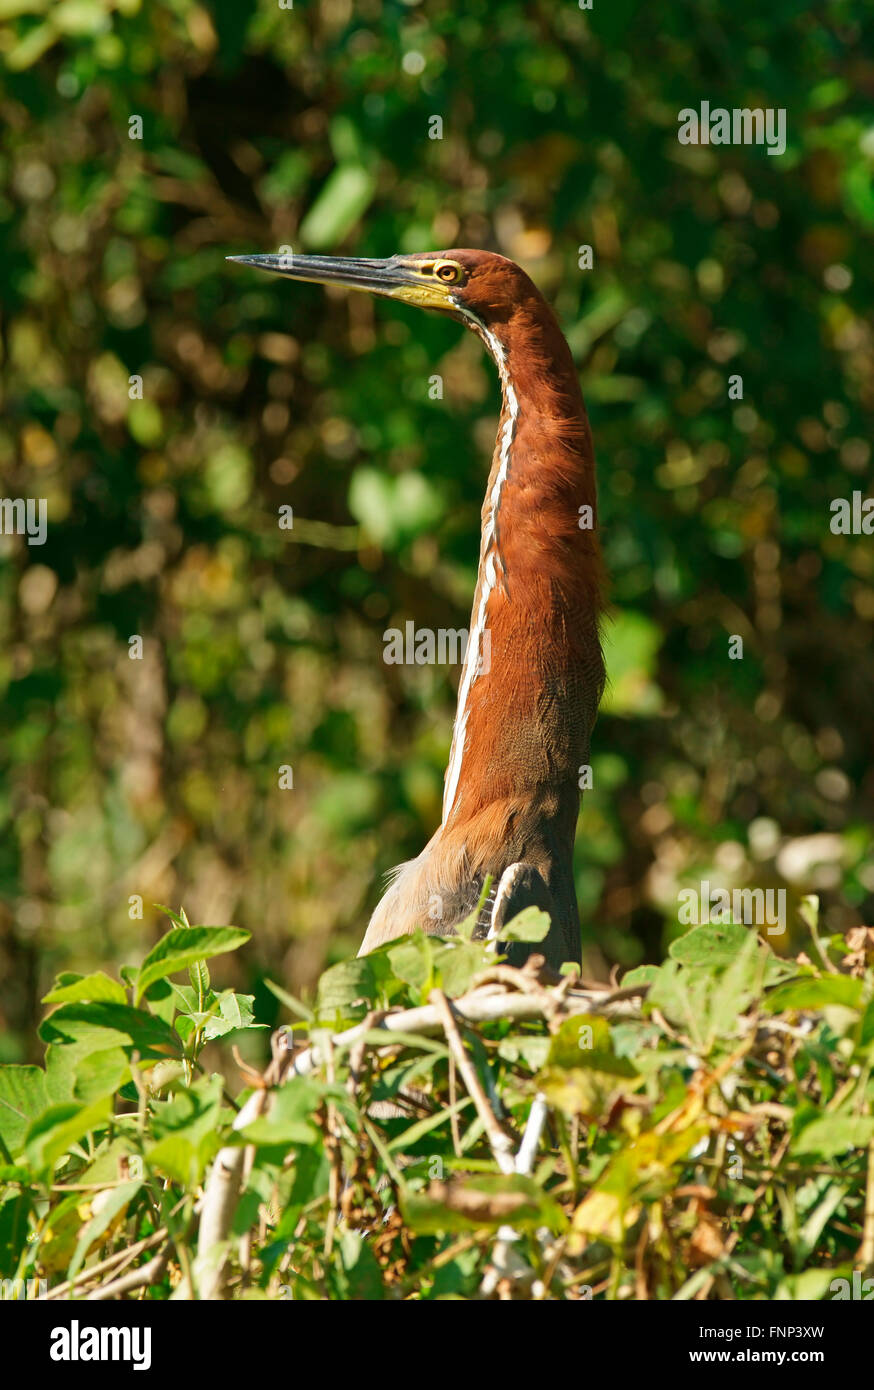 Rufescent tiger heron (Tigrisoma lineatum) looking out of the bushes, Pantanal, Brazil Stock Photo